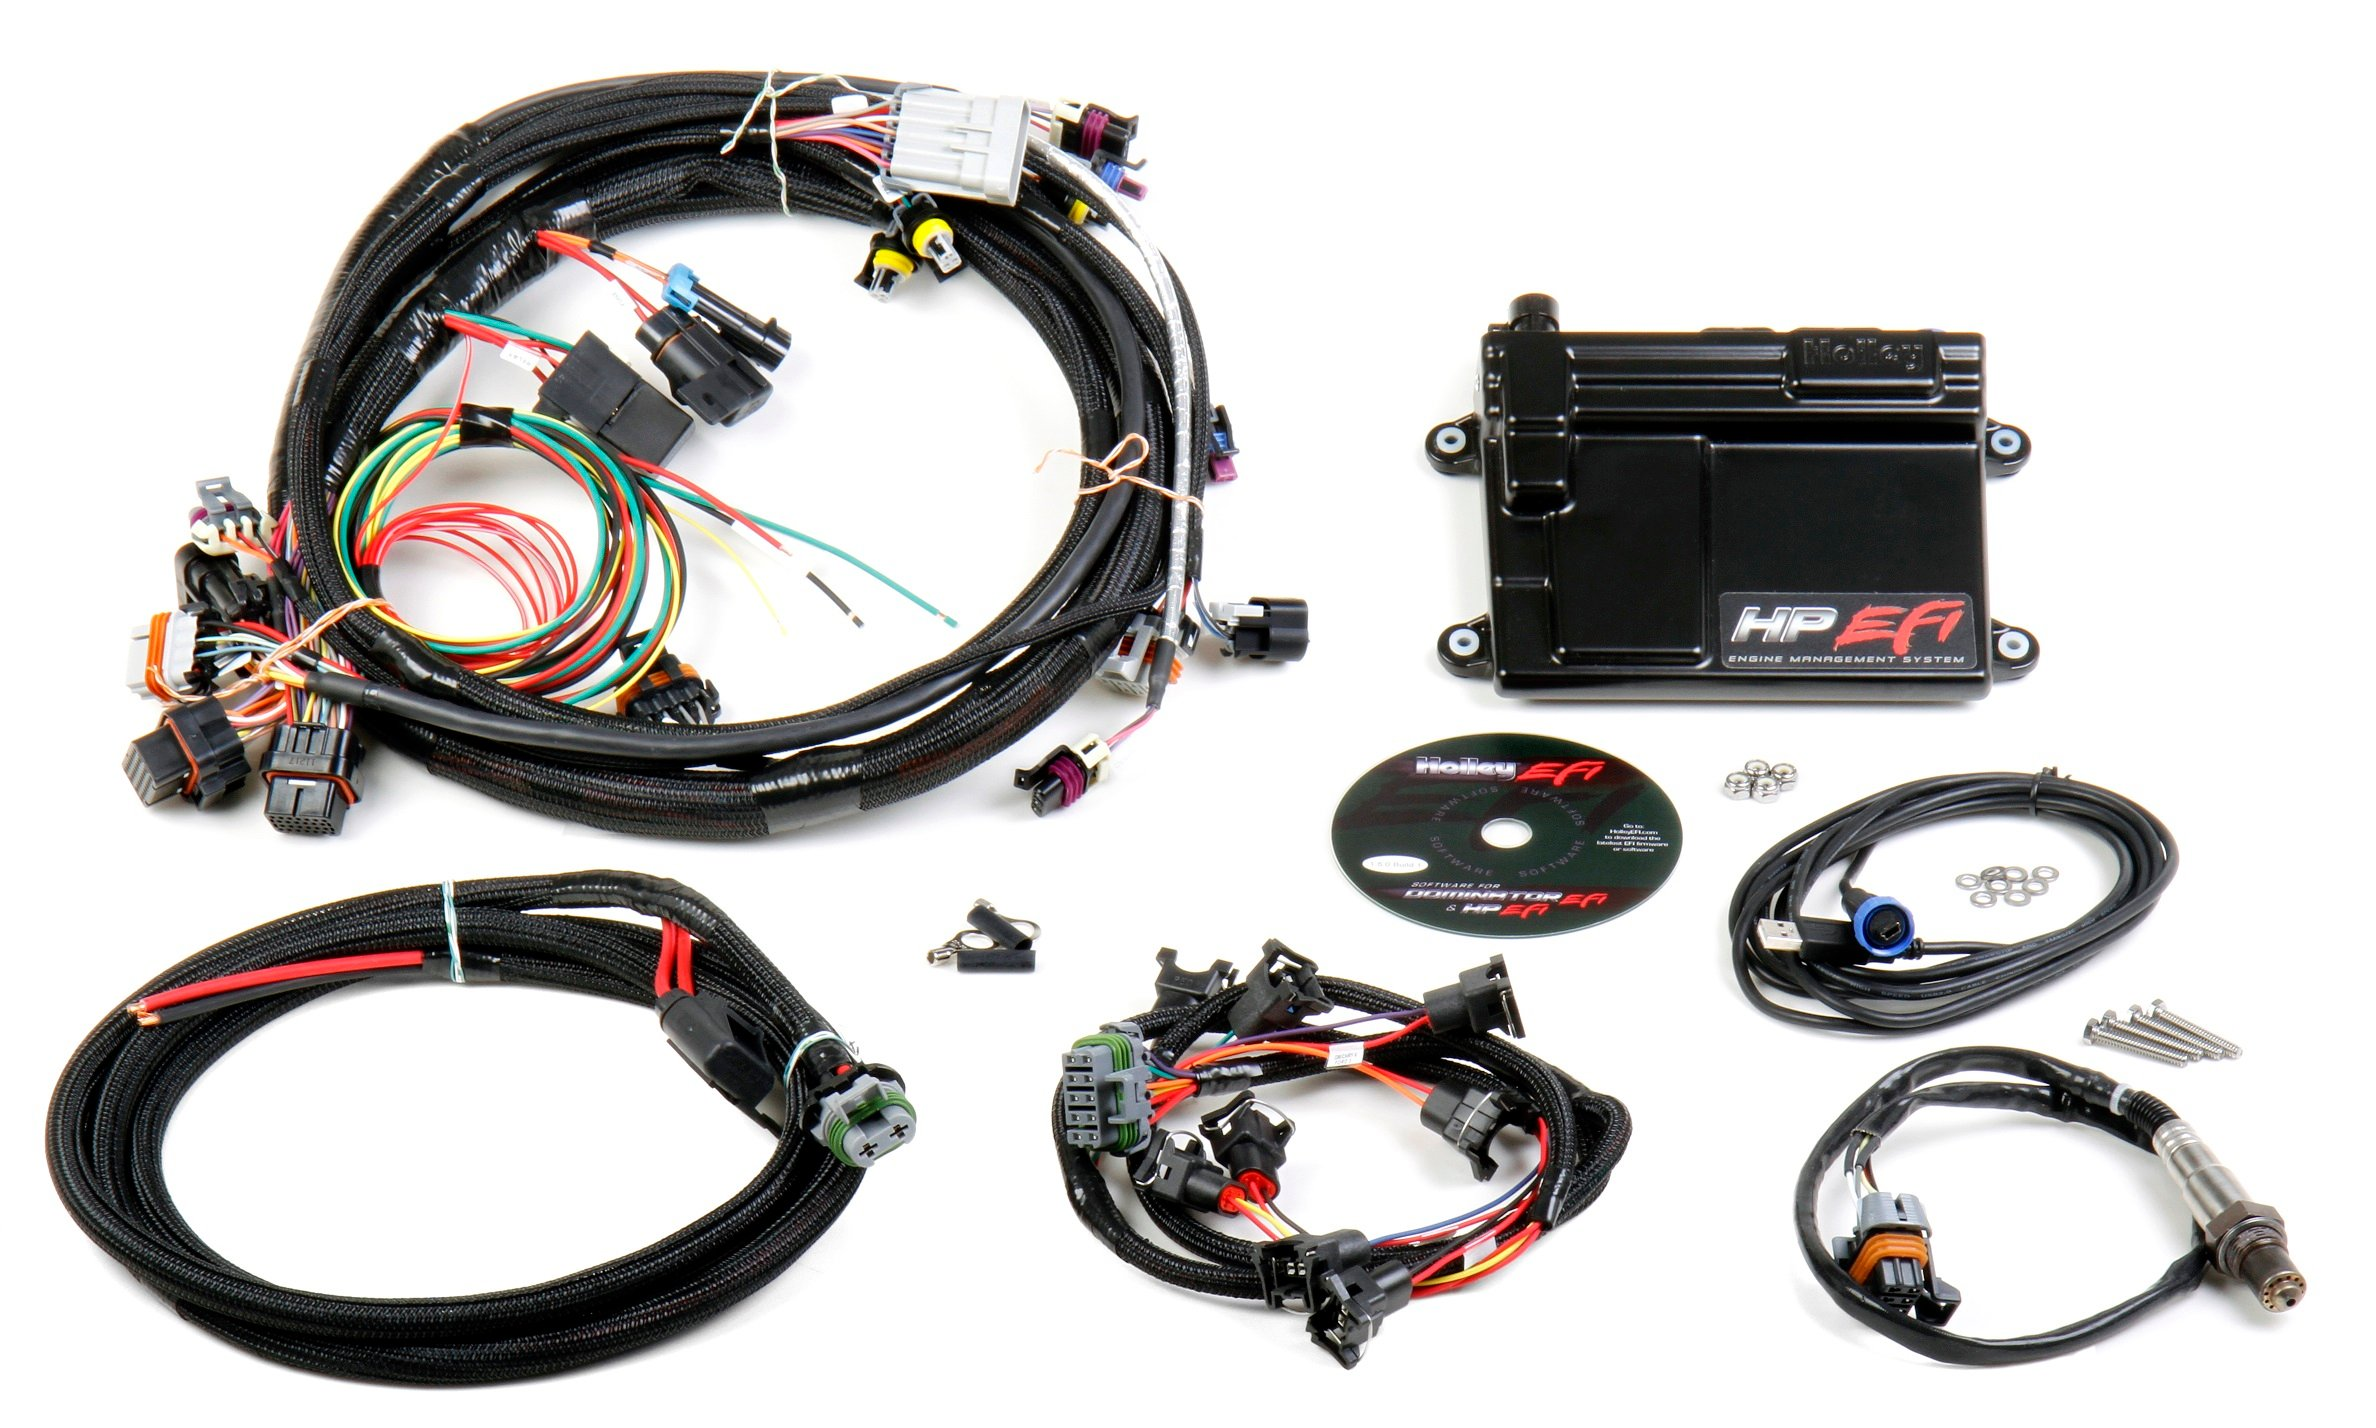 550 602 holley efi 550 602 hp efi ecu & harness kits engine wiring harness for sale at fashall.co